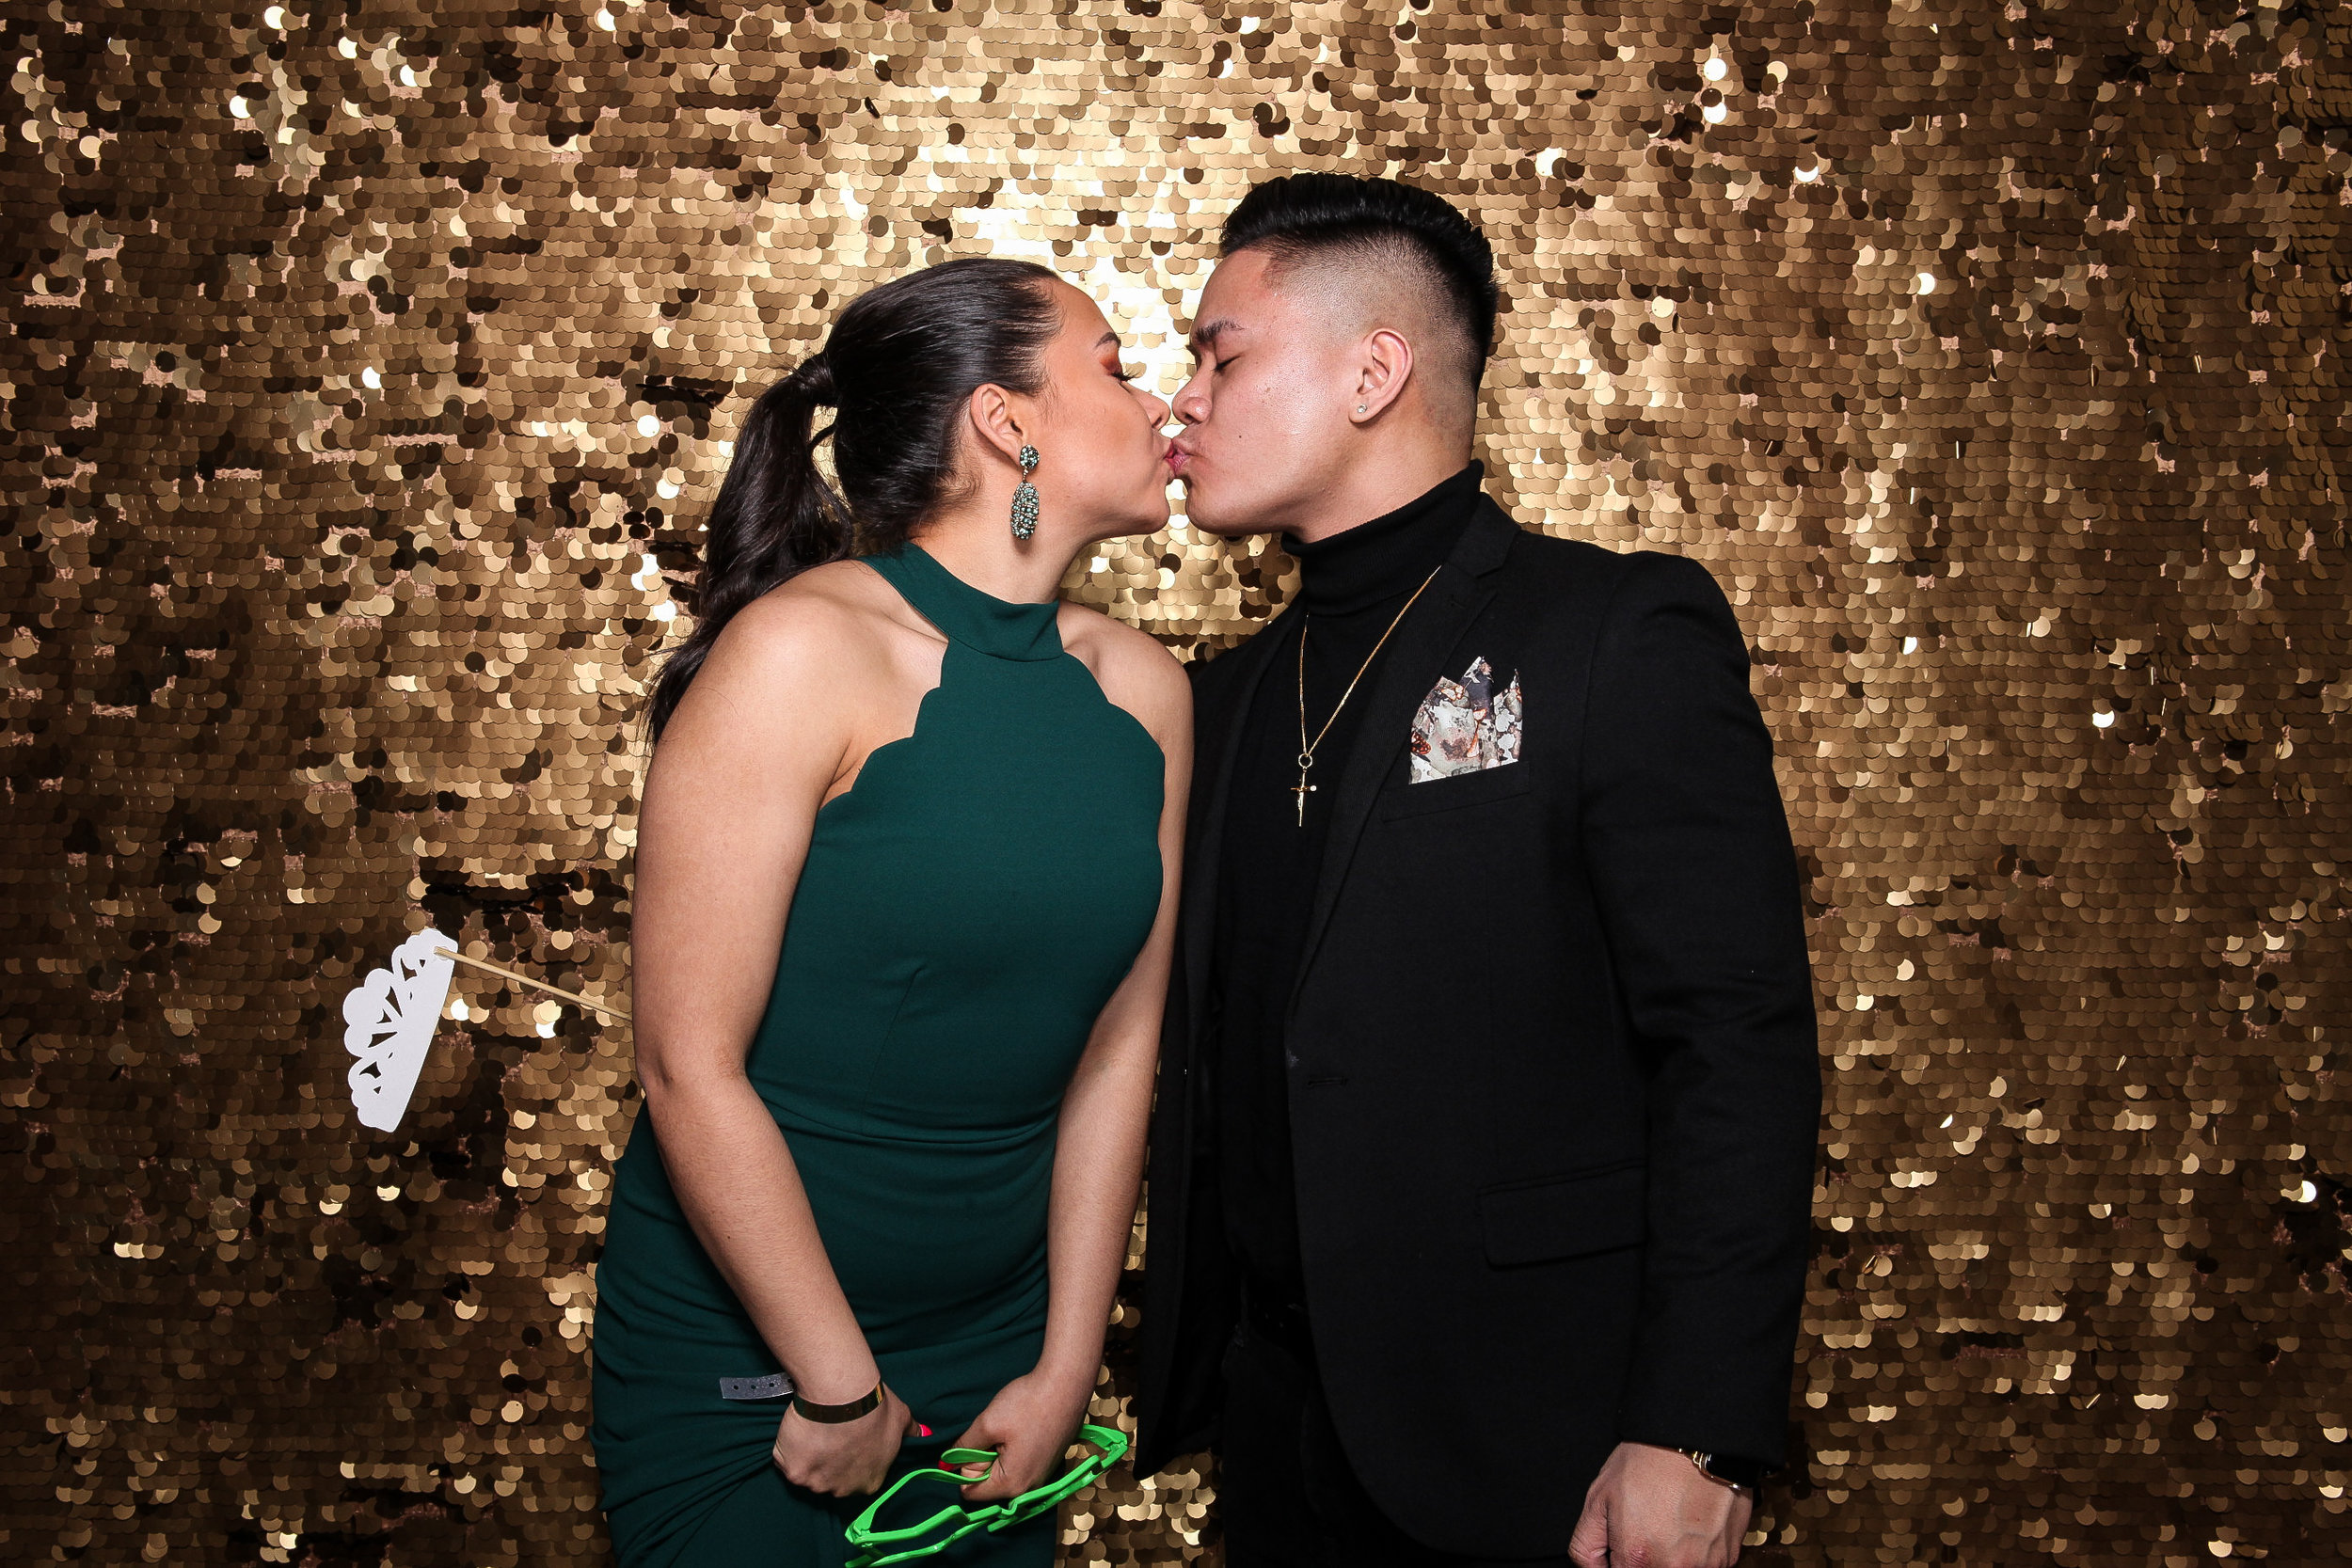 20190503_Adelphi_Senior_Formal-144.jpg